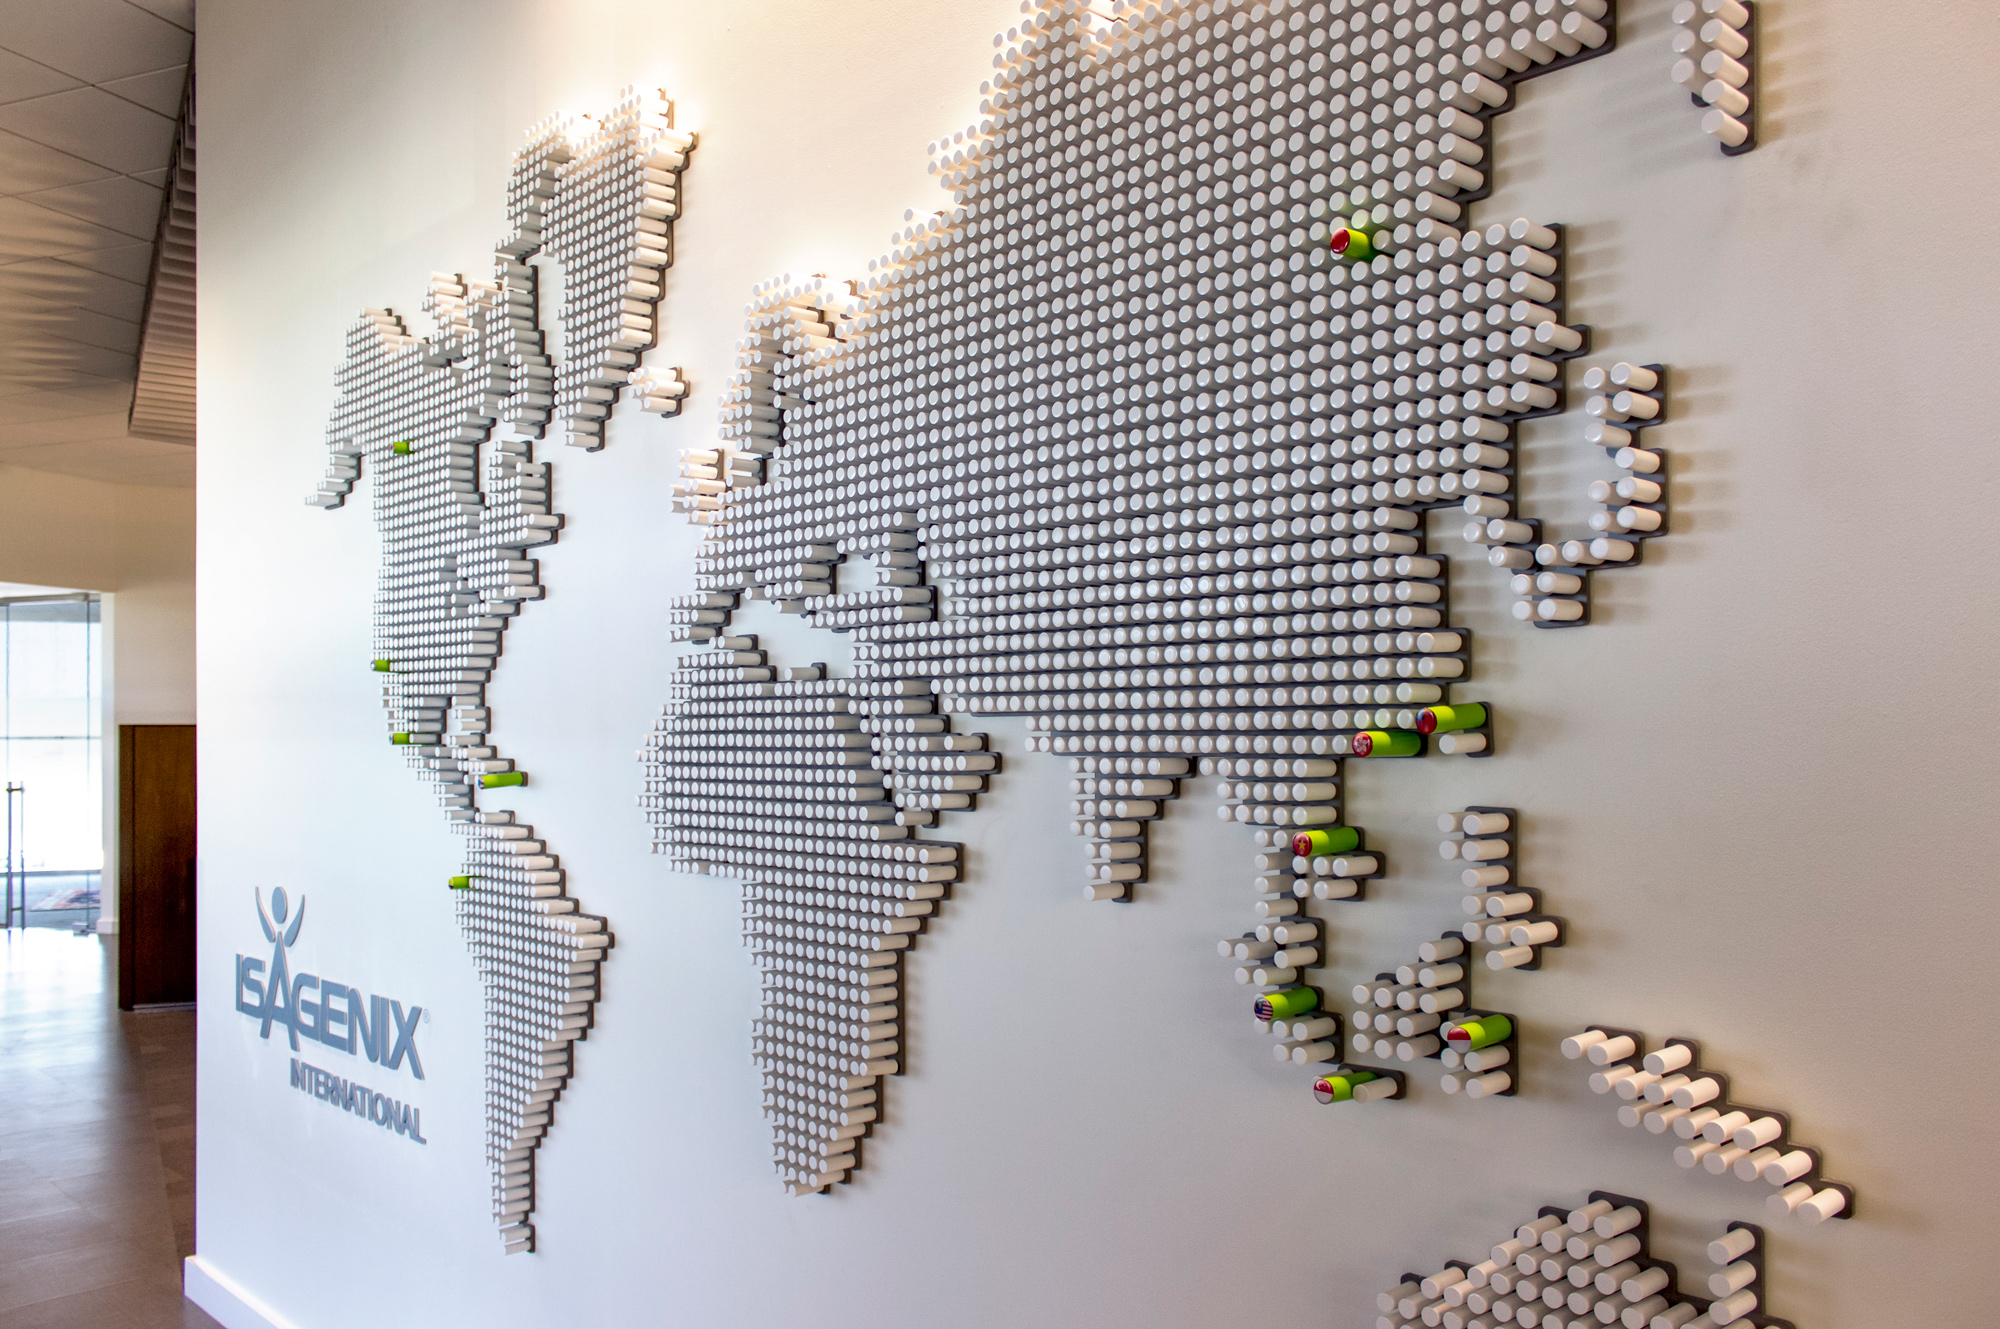 This map is fabricated using custom routed acrylic pegs mounted to a back plate.Each Isagenix office is denoted with an oversized green peg and map.